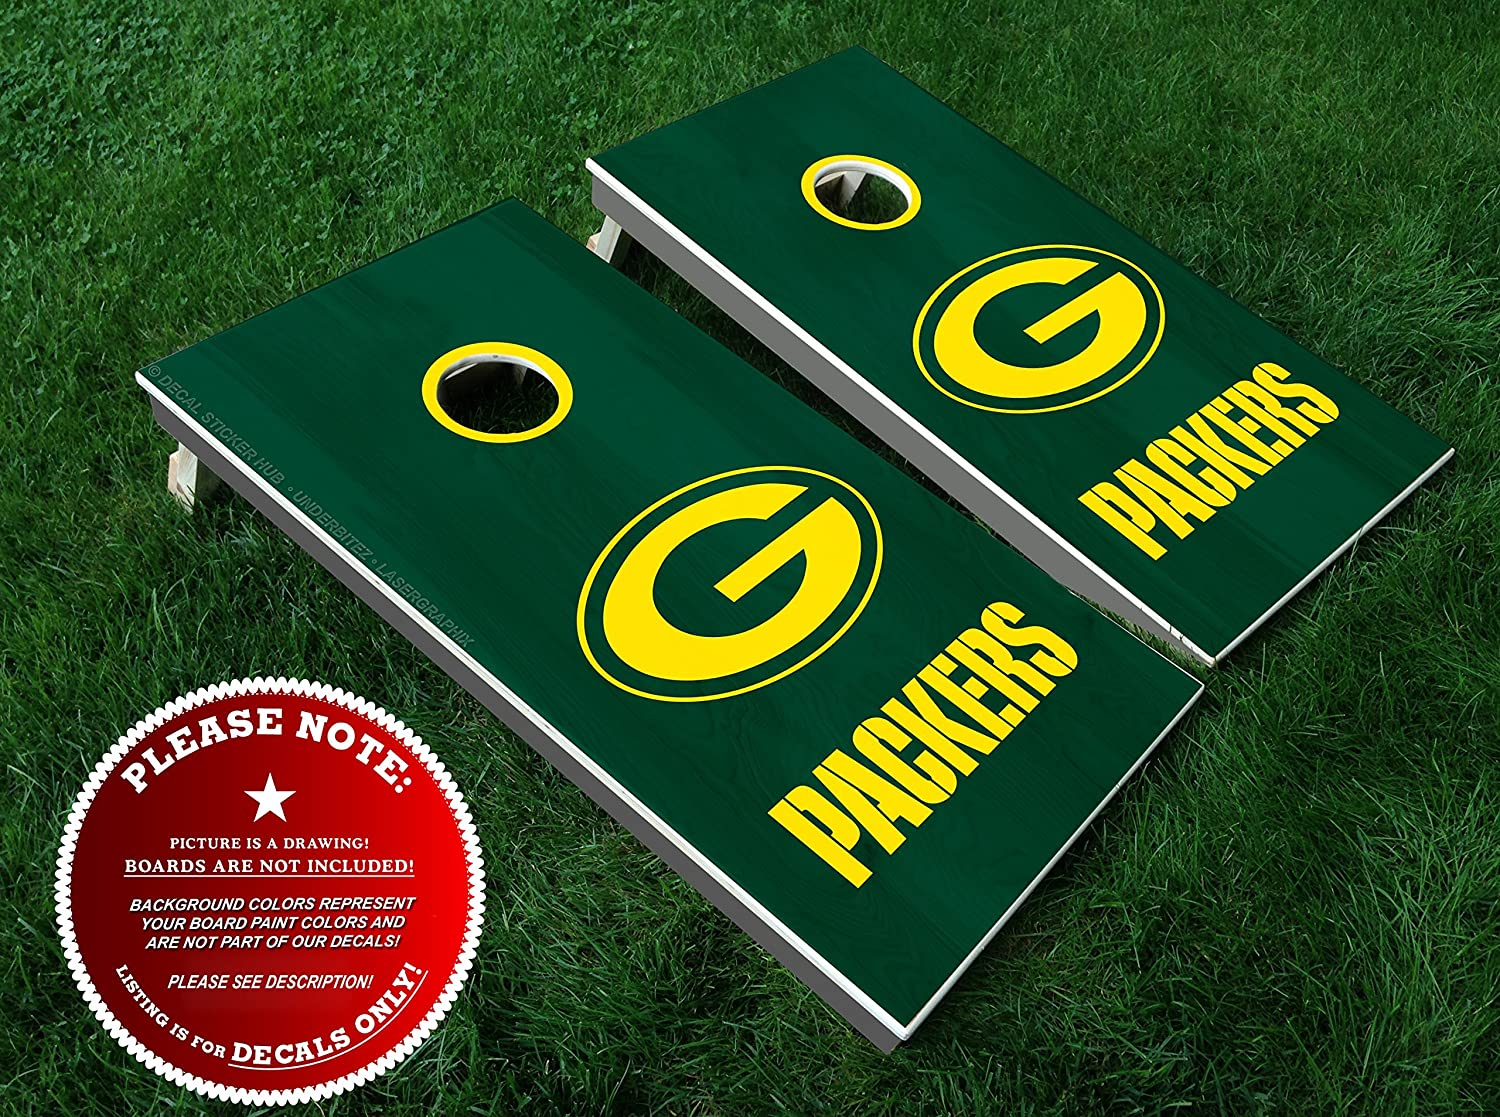 Fantastic Green Bay Packers Cornhole Decals Diy Vinyl Sticker Set For Bean Bag Toss Lawn Games Cornhole Board Building And Decorating Decal Sticker Hub Evergreenethics Interior Chair Design Evergreenethicsorg